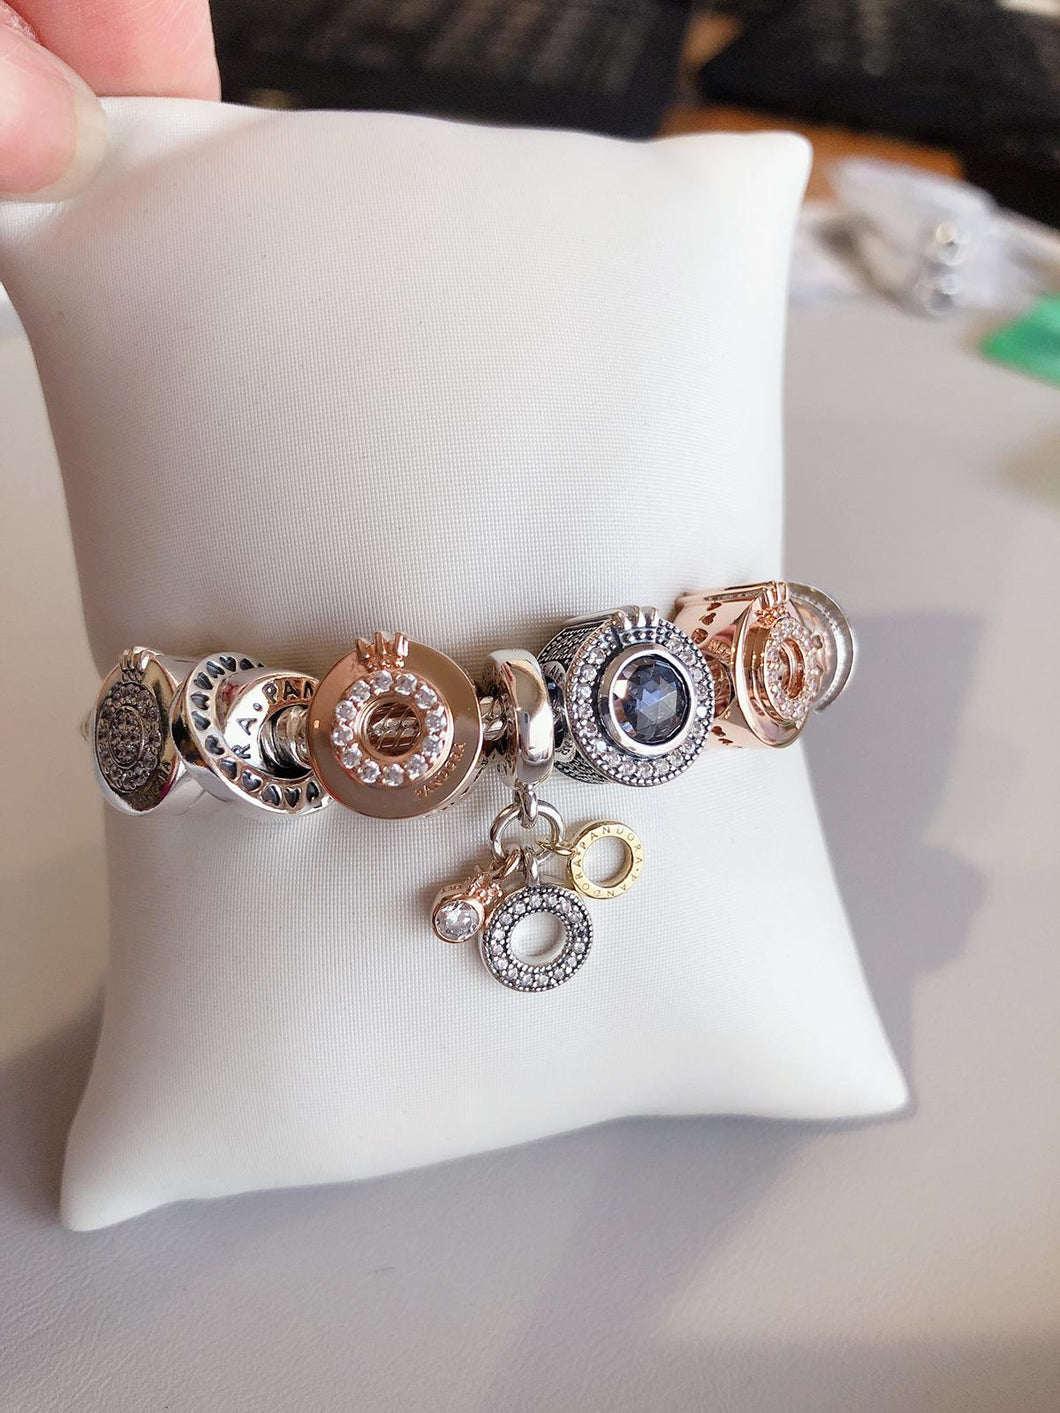 Customized Pandora Bracelet with 6 charms